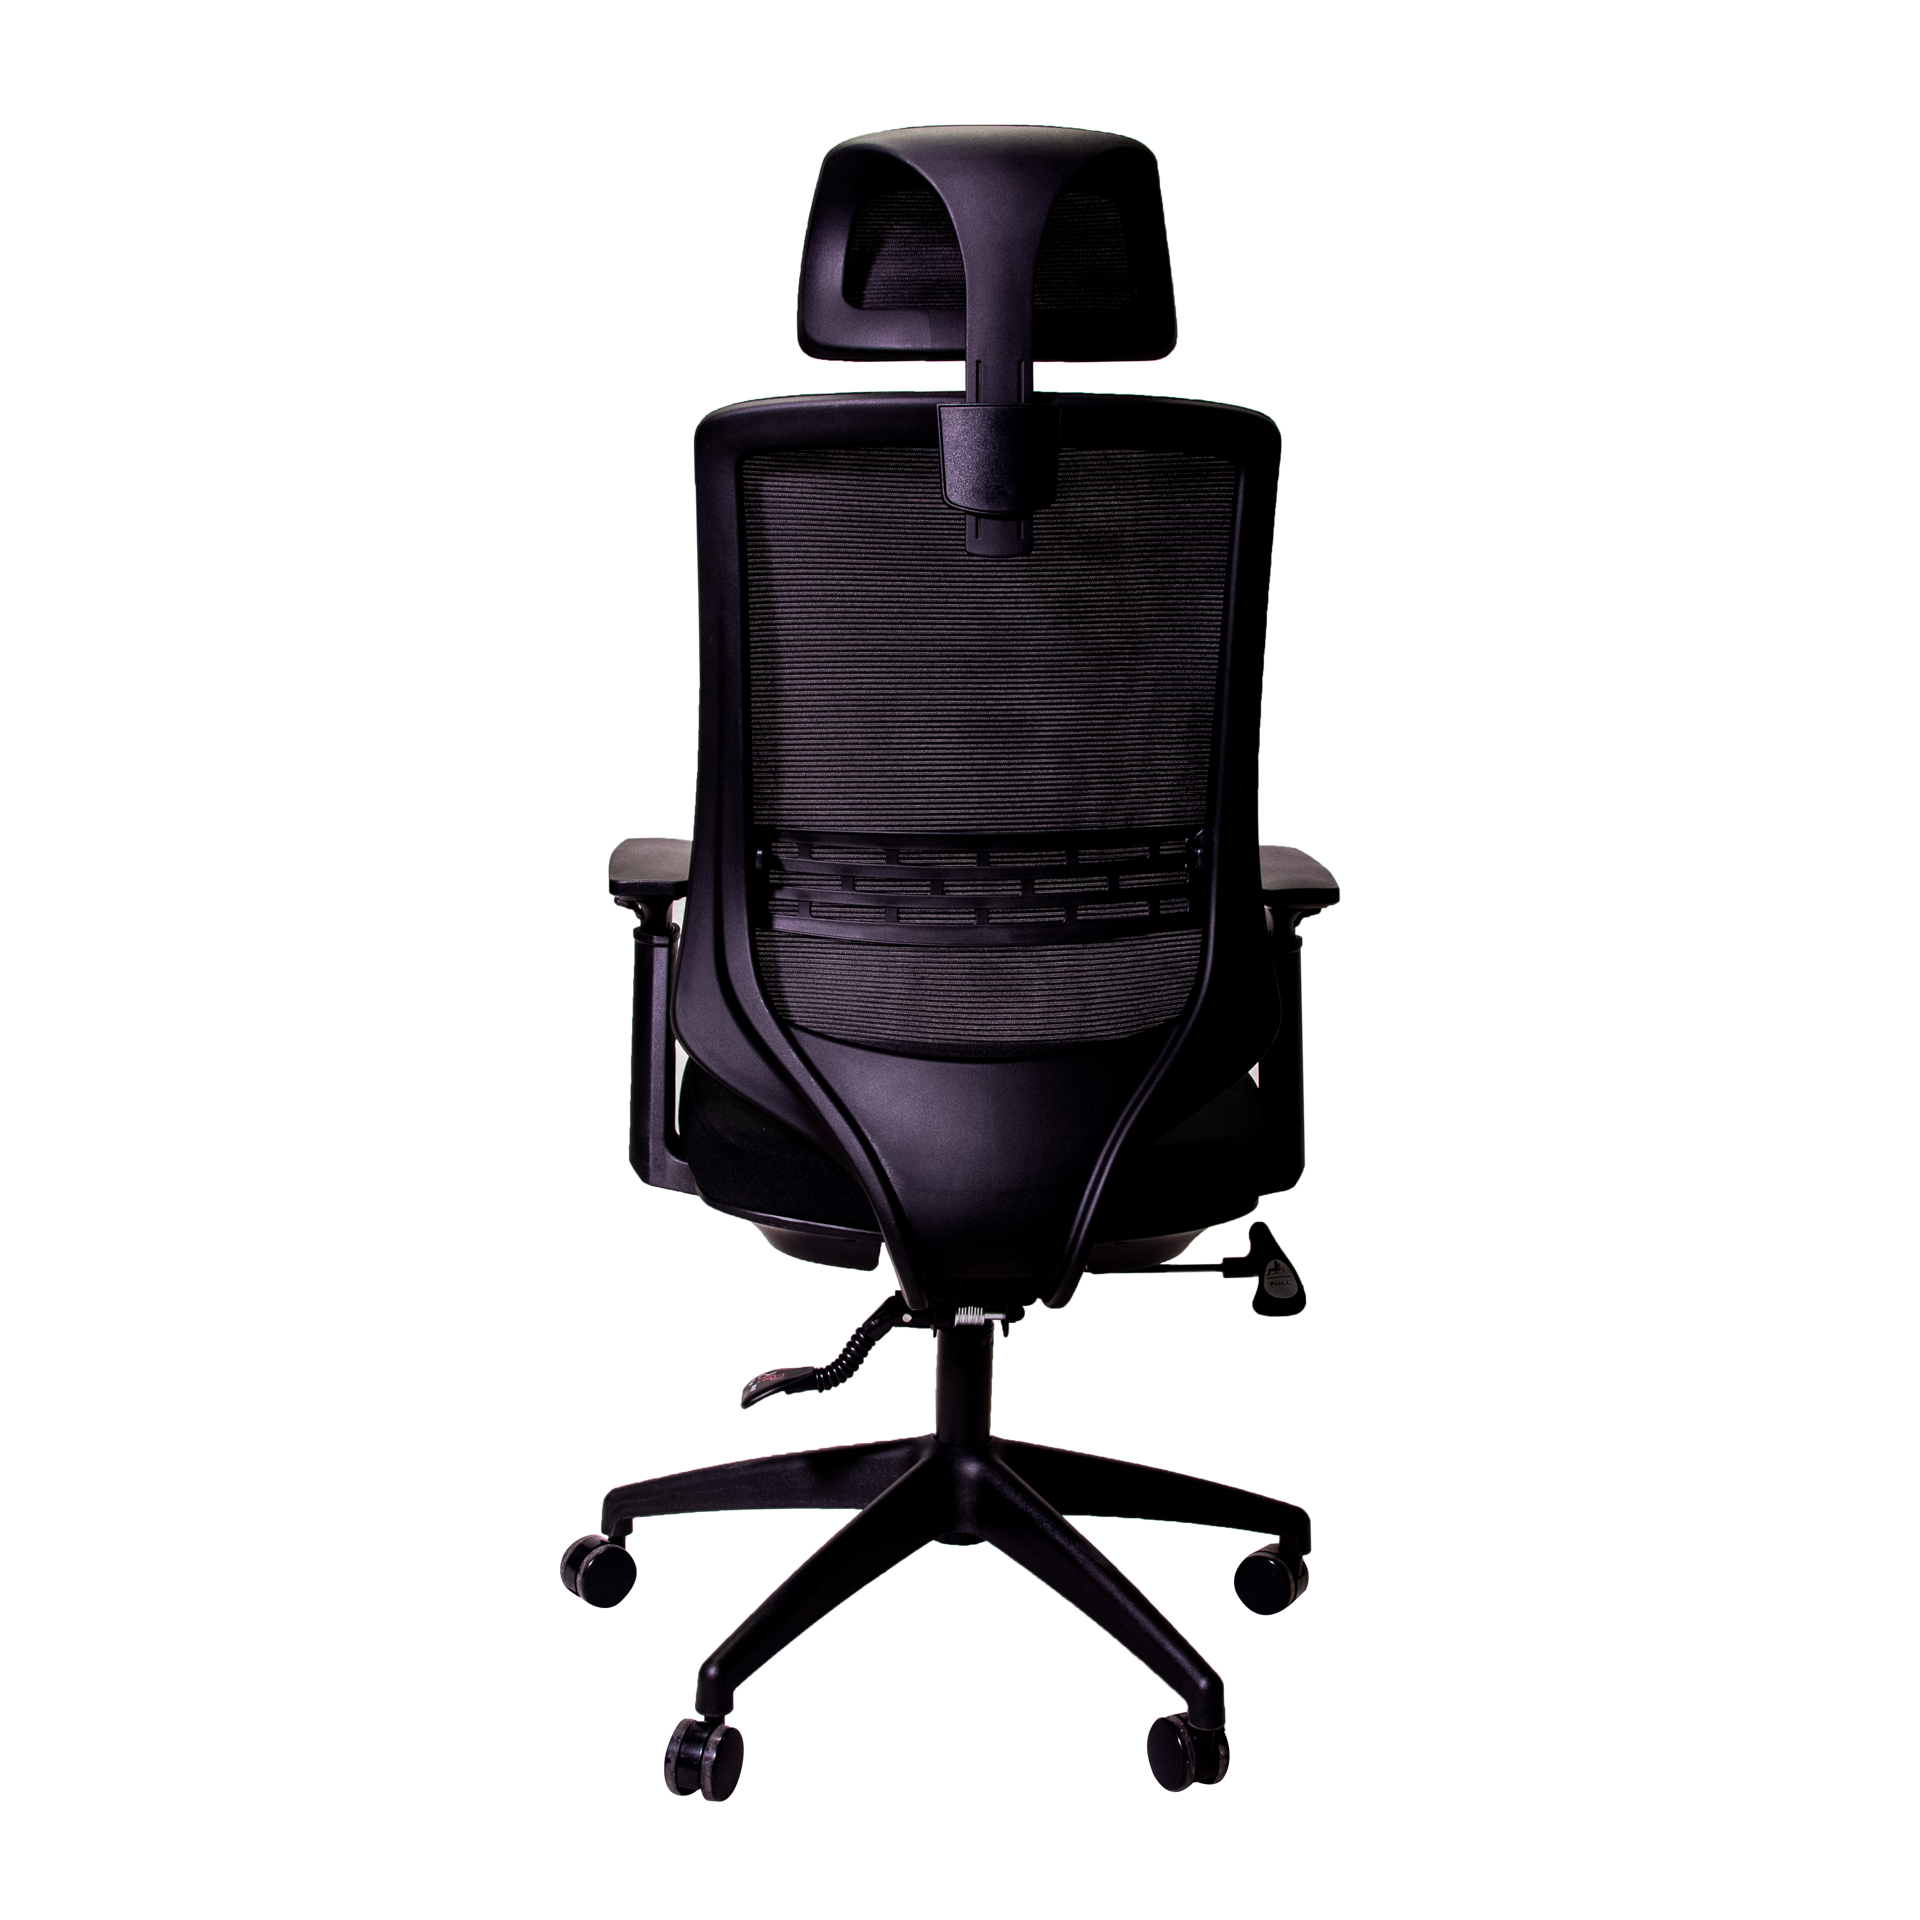 Anji High Back Mesh Chair w/Headrest - Black